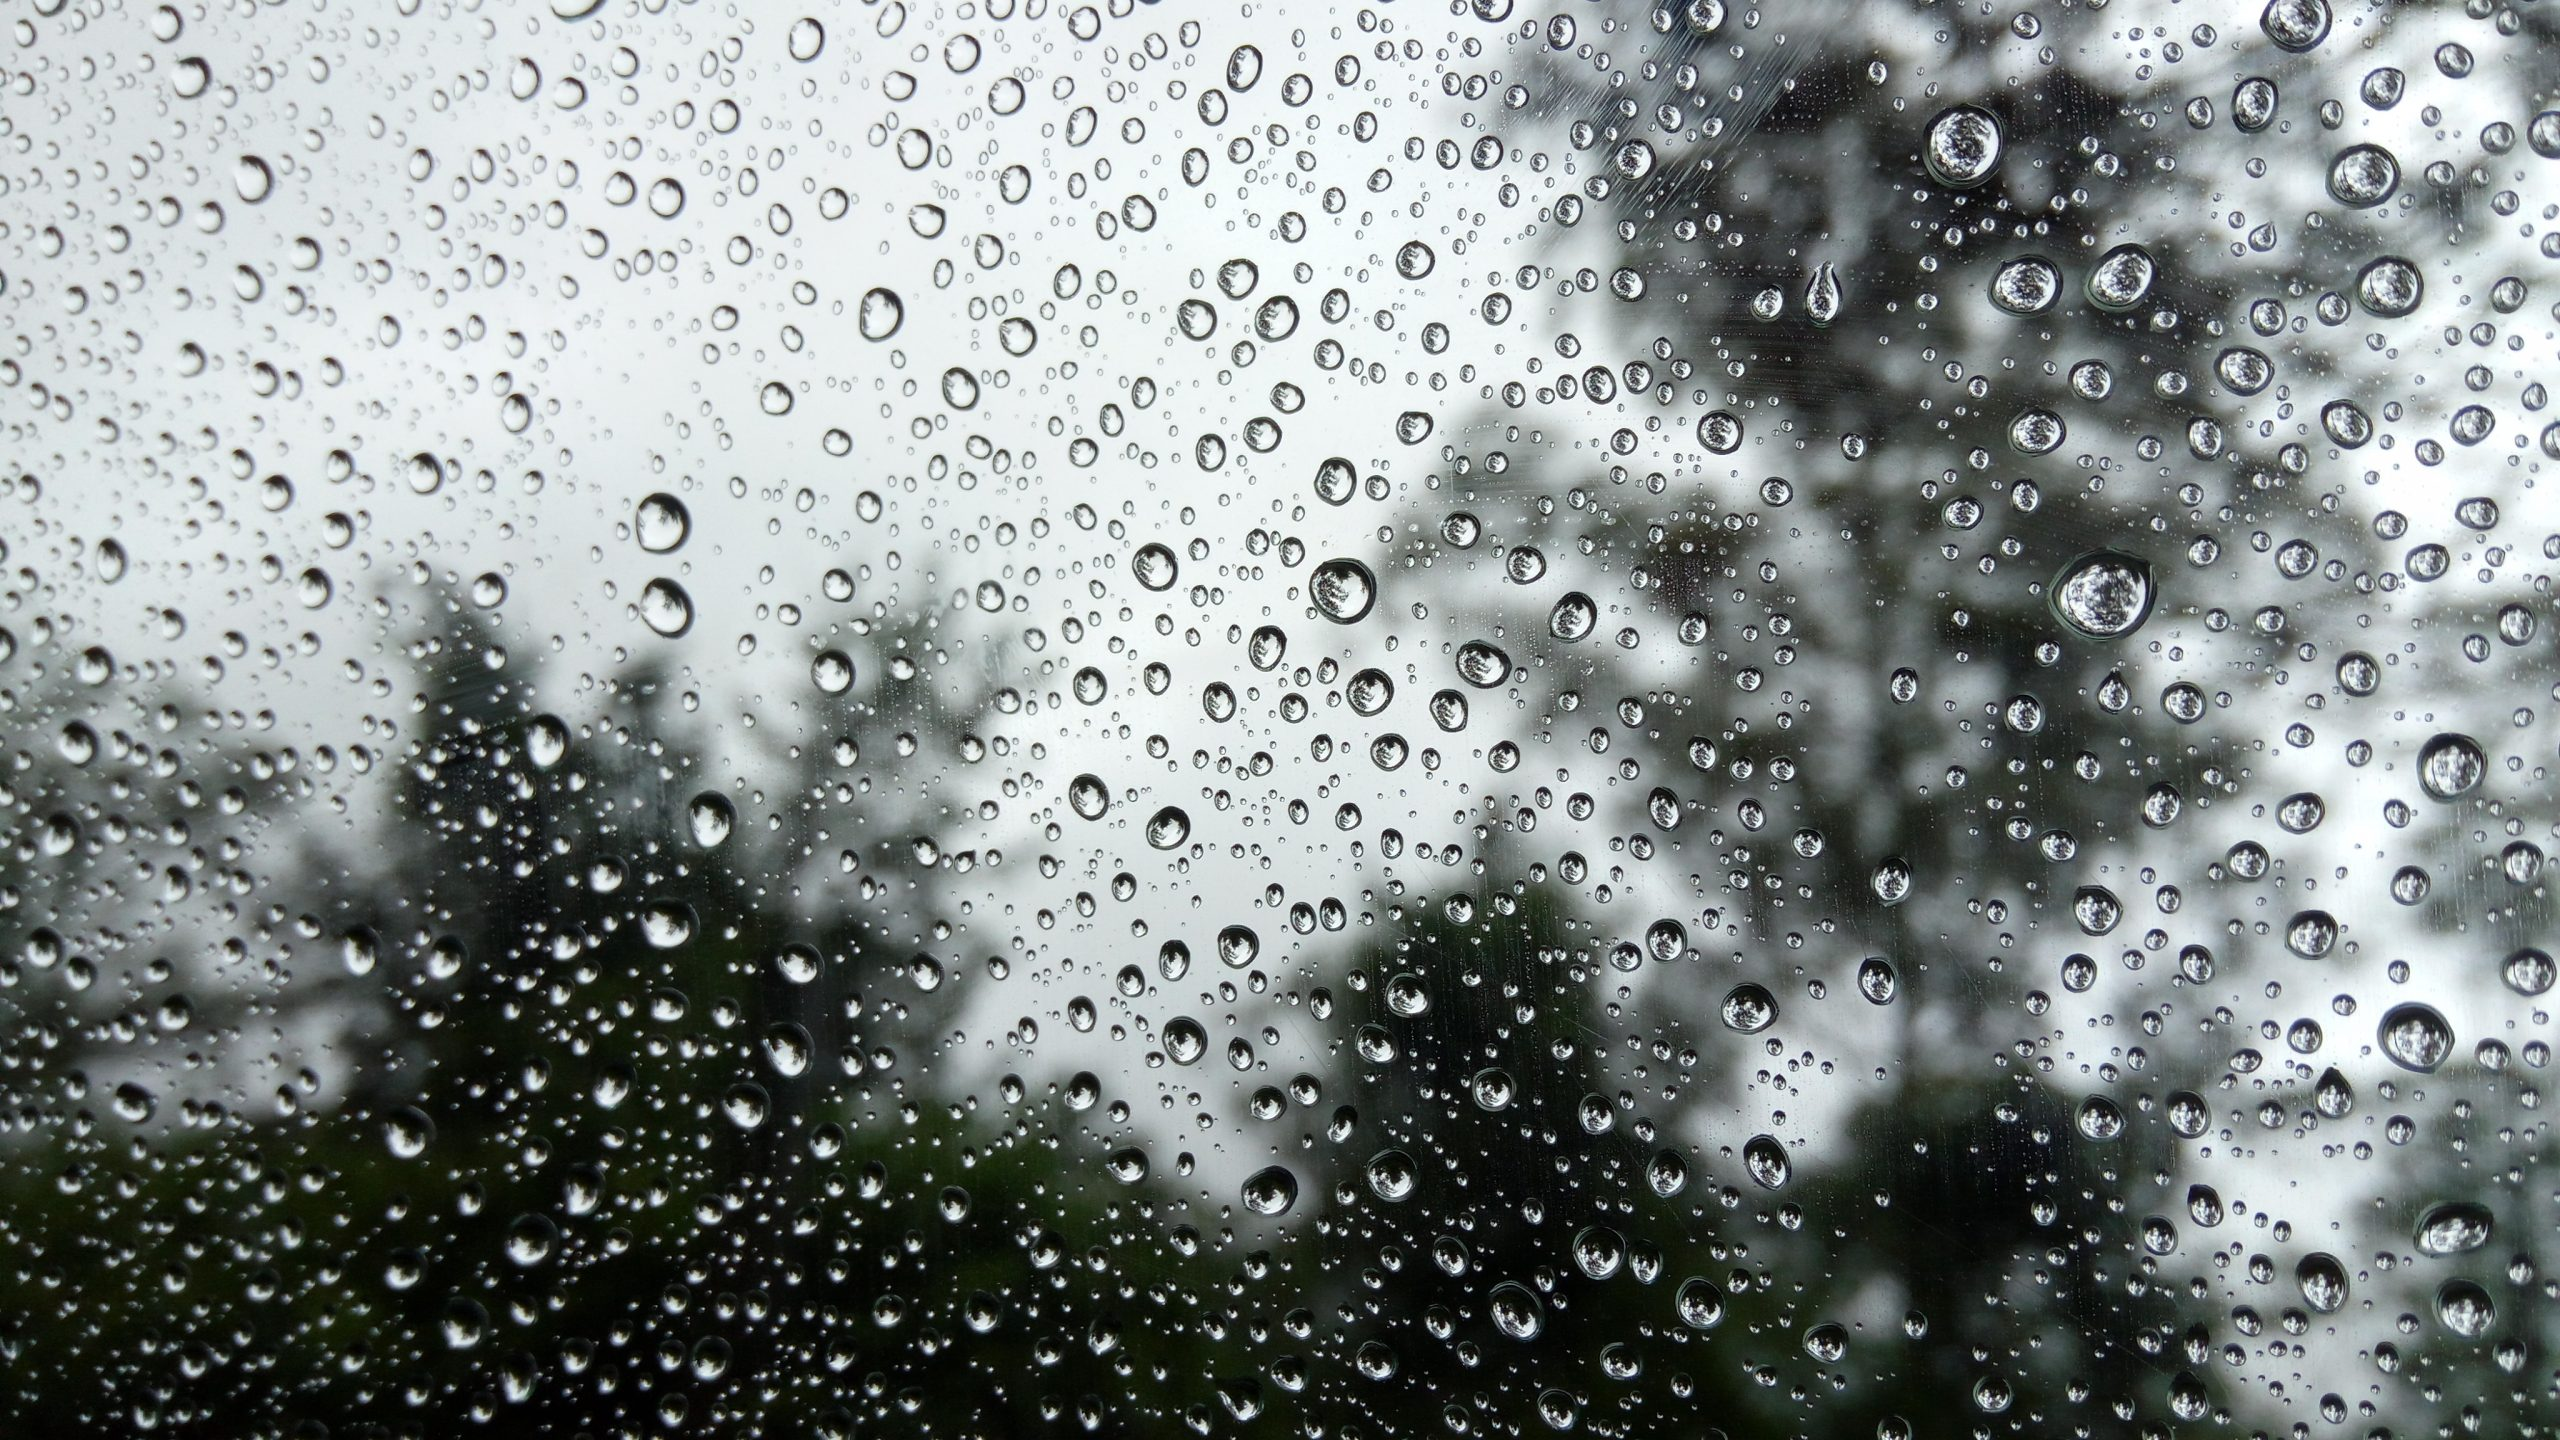 Dewdrops on the Glass